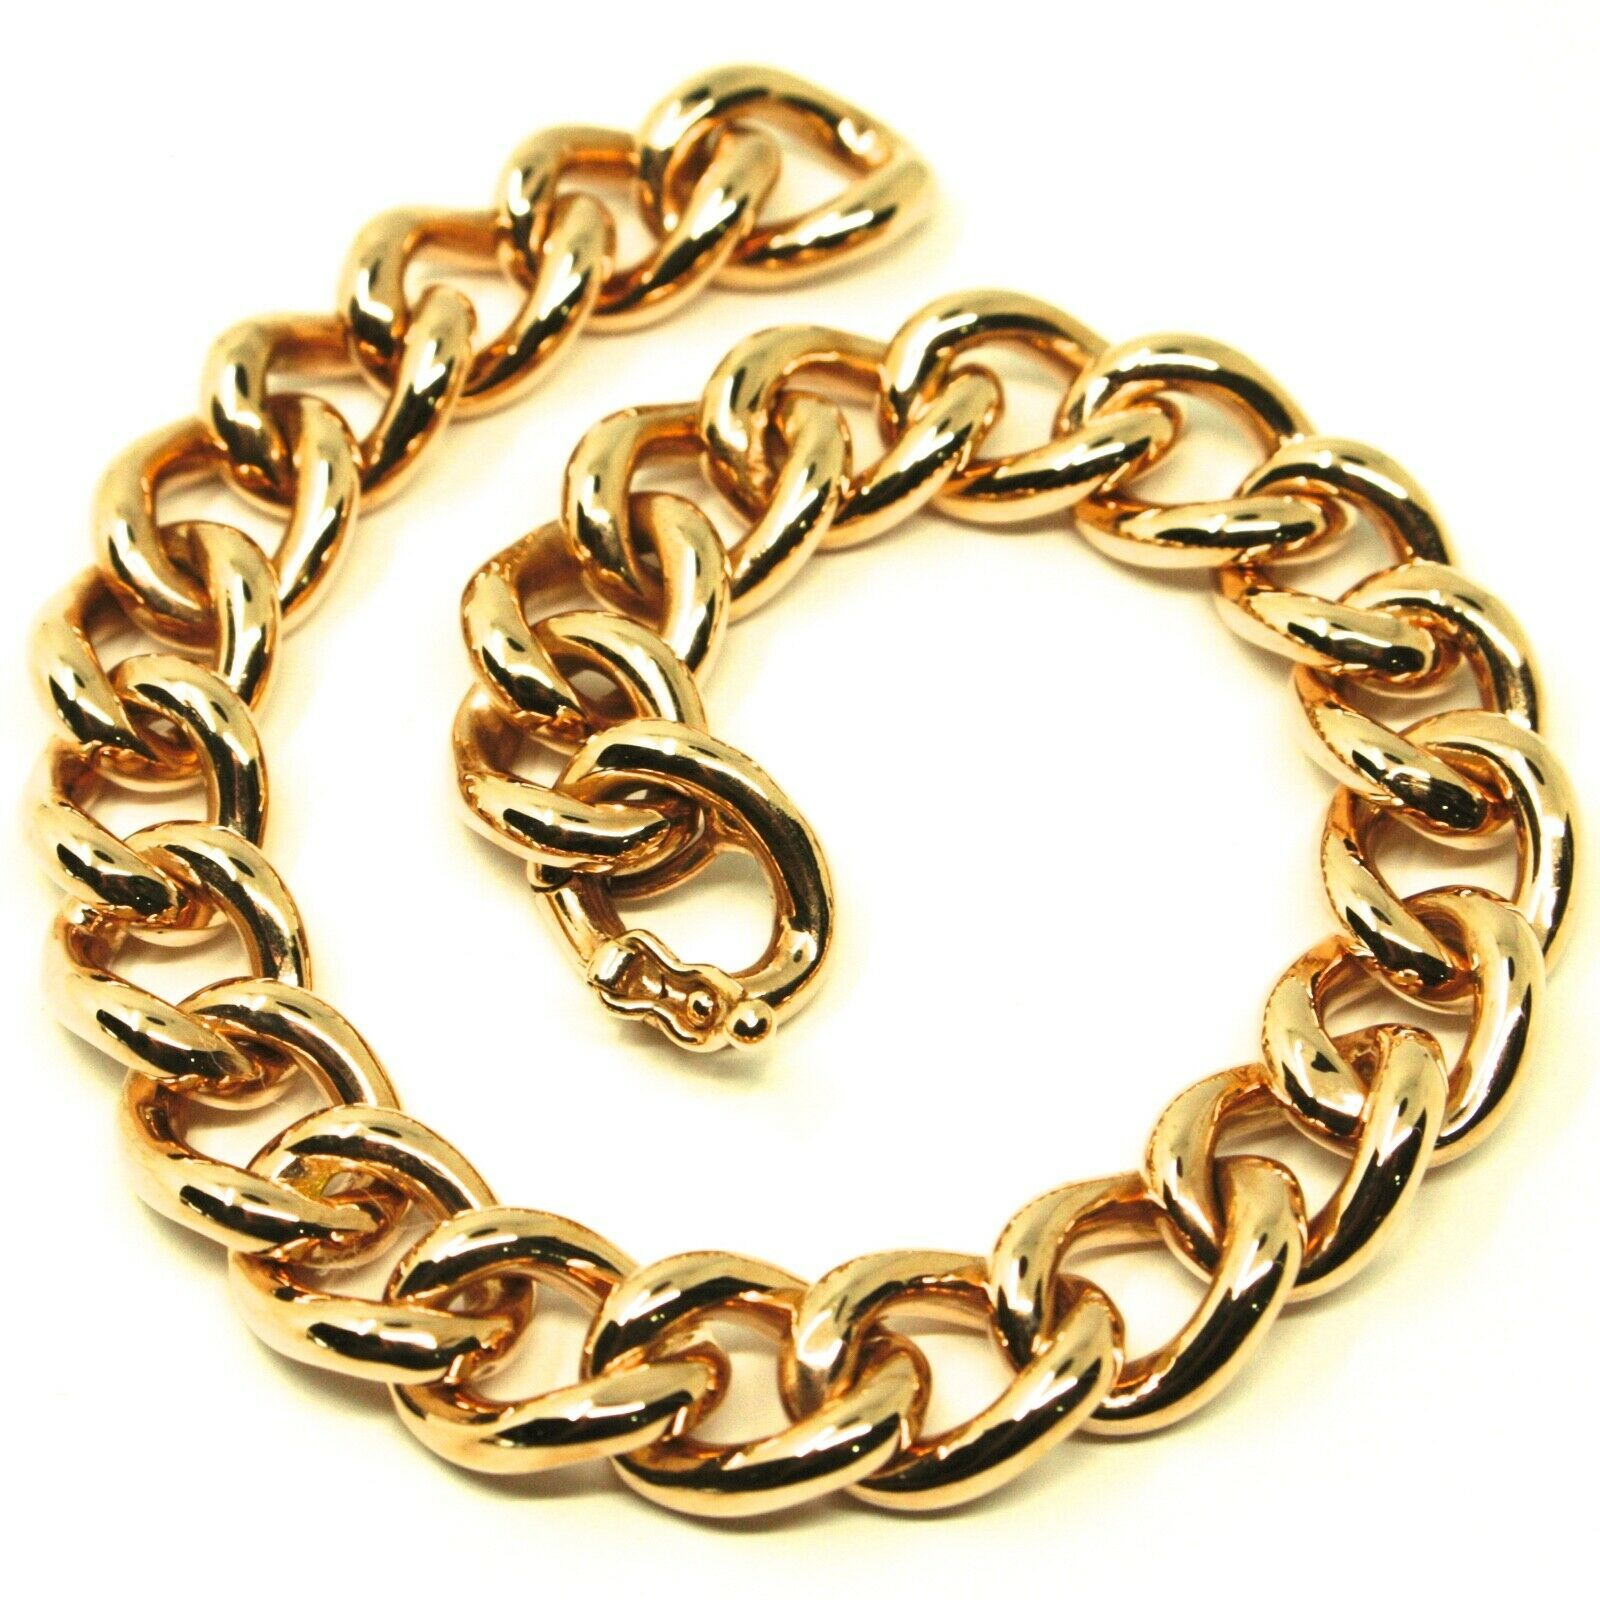 18K YELLOW GOLD BRACELET BIG ONDULATE ROUNDED GOURMETTE CUBAN CURB LINKS 9.5 mm